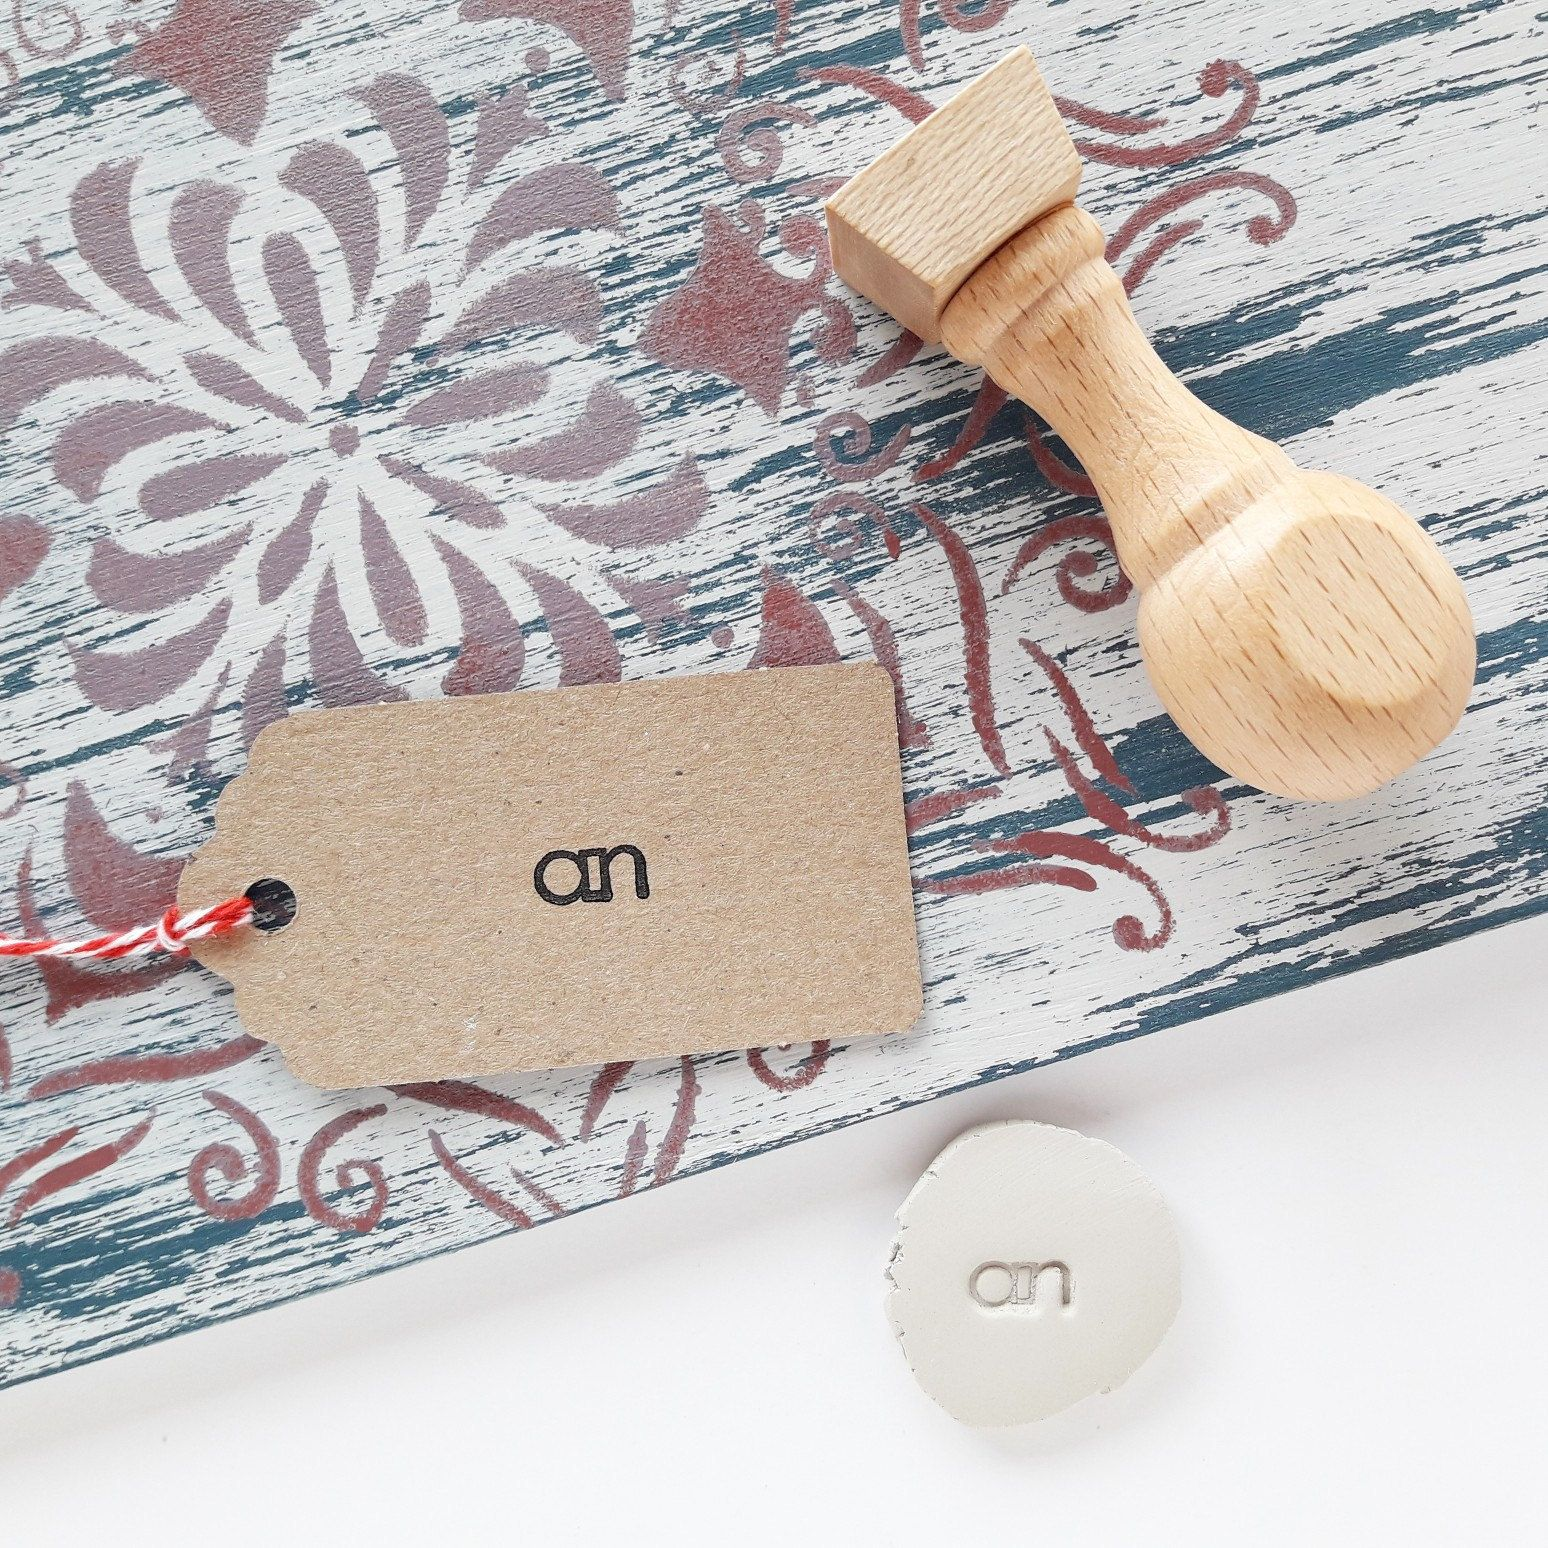 Stamping on clay, soap, paper and fabric? To do this you don't need 4 different stamps!  With a single hard and deep resin stamp and 1 ink you can stamp or mark many surfaces !!   #potterytools #ceramictools #potterystamp